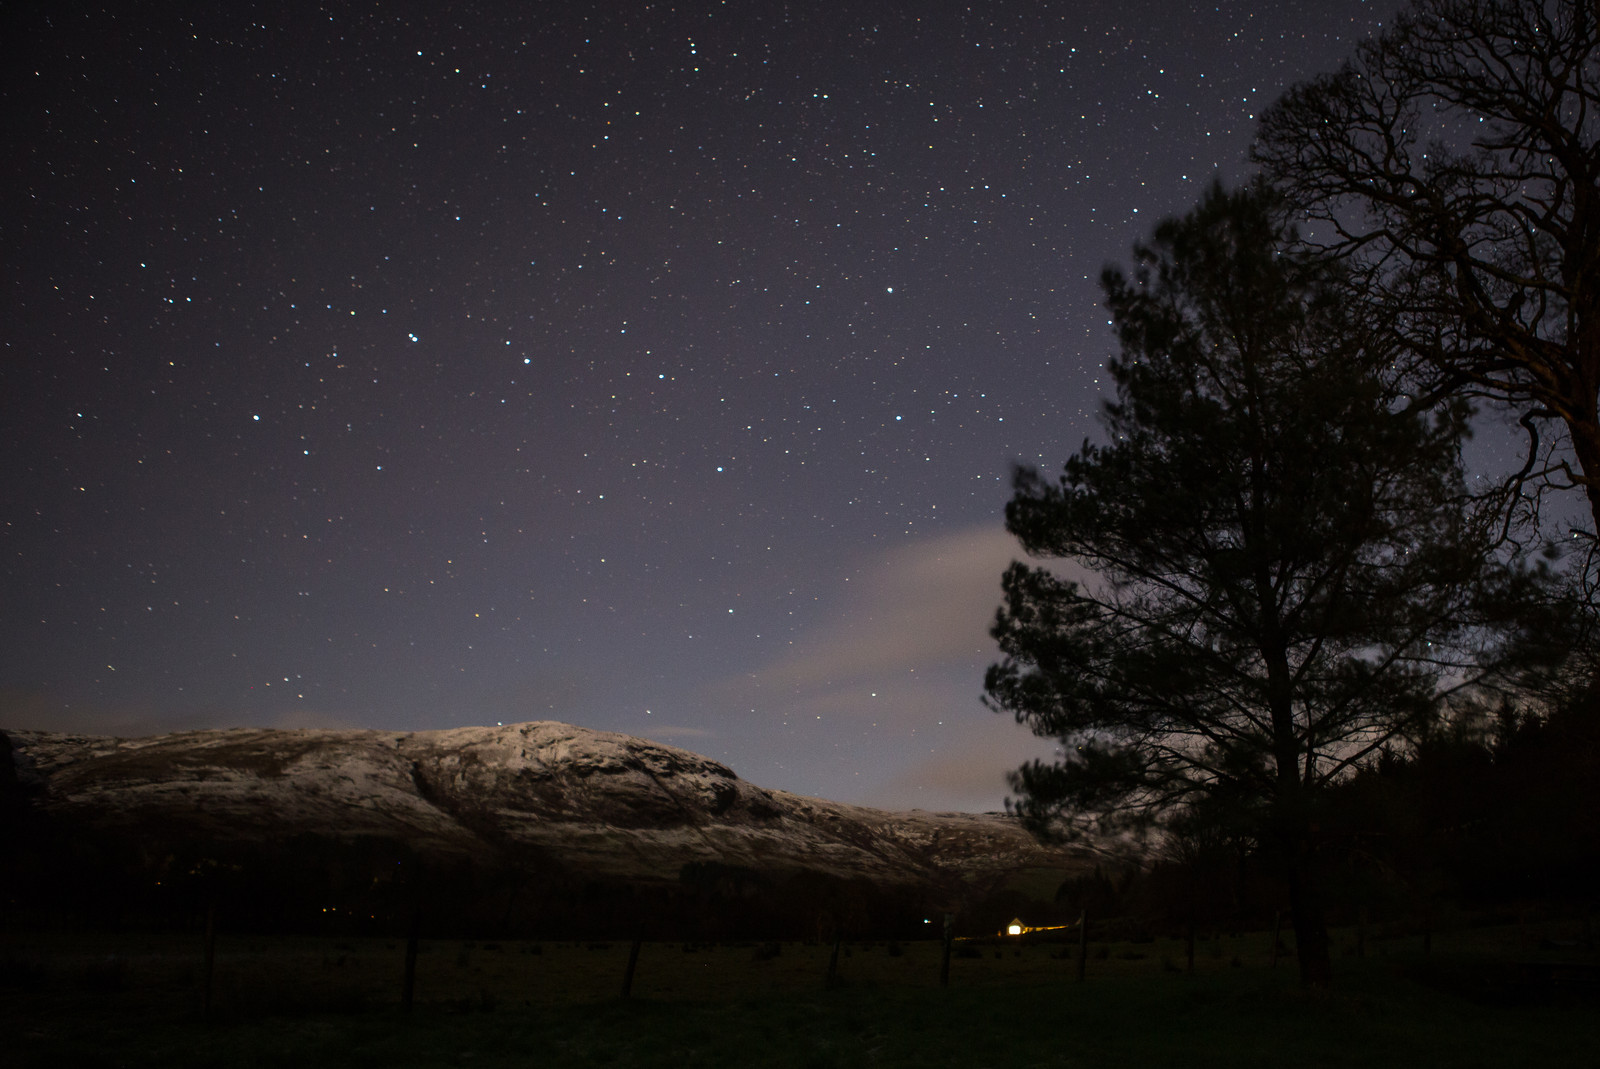 Eco Tourism Argyll Scotland Nature Holidays Aurora Borealis Can Be Seen From Our Accomodation